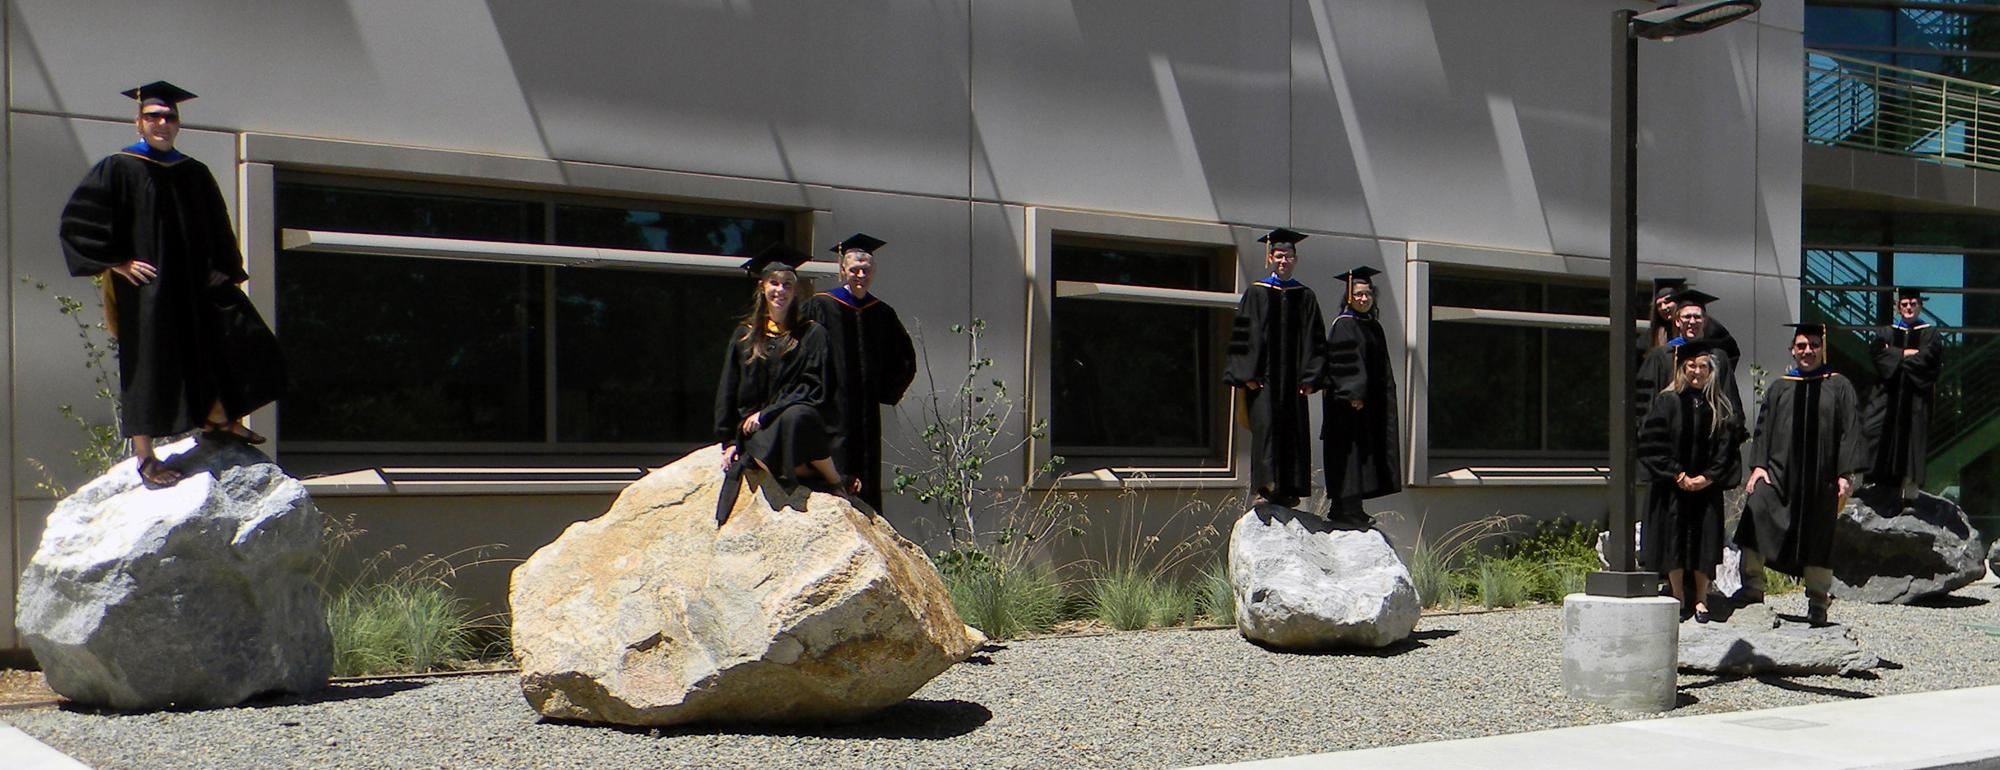 Grad students standing on rocks